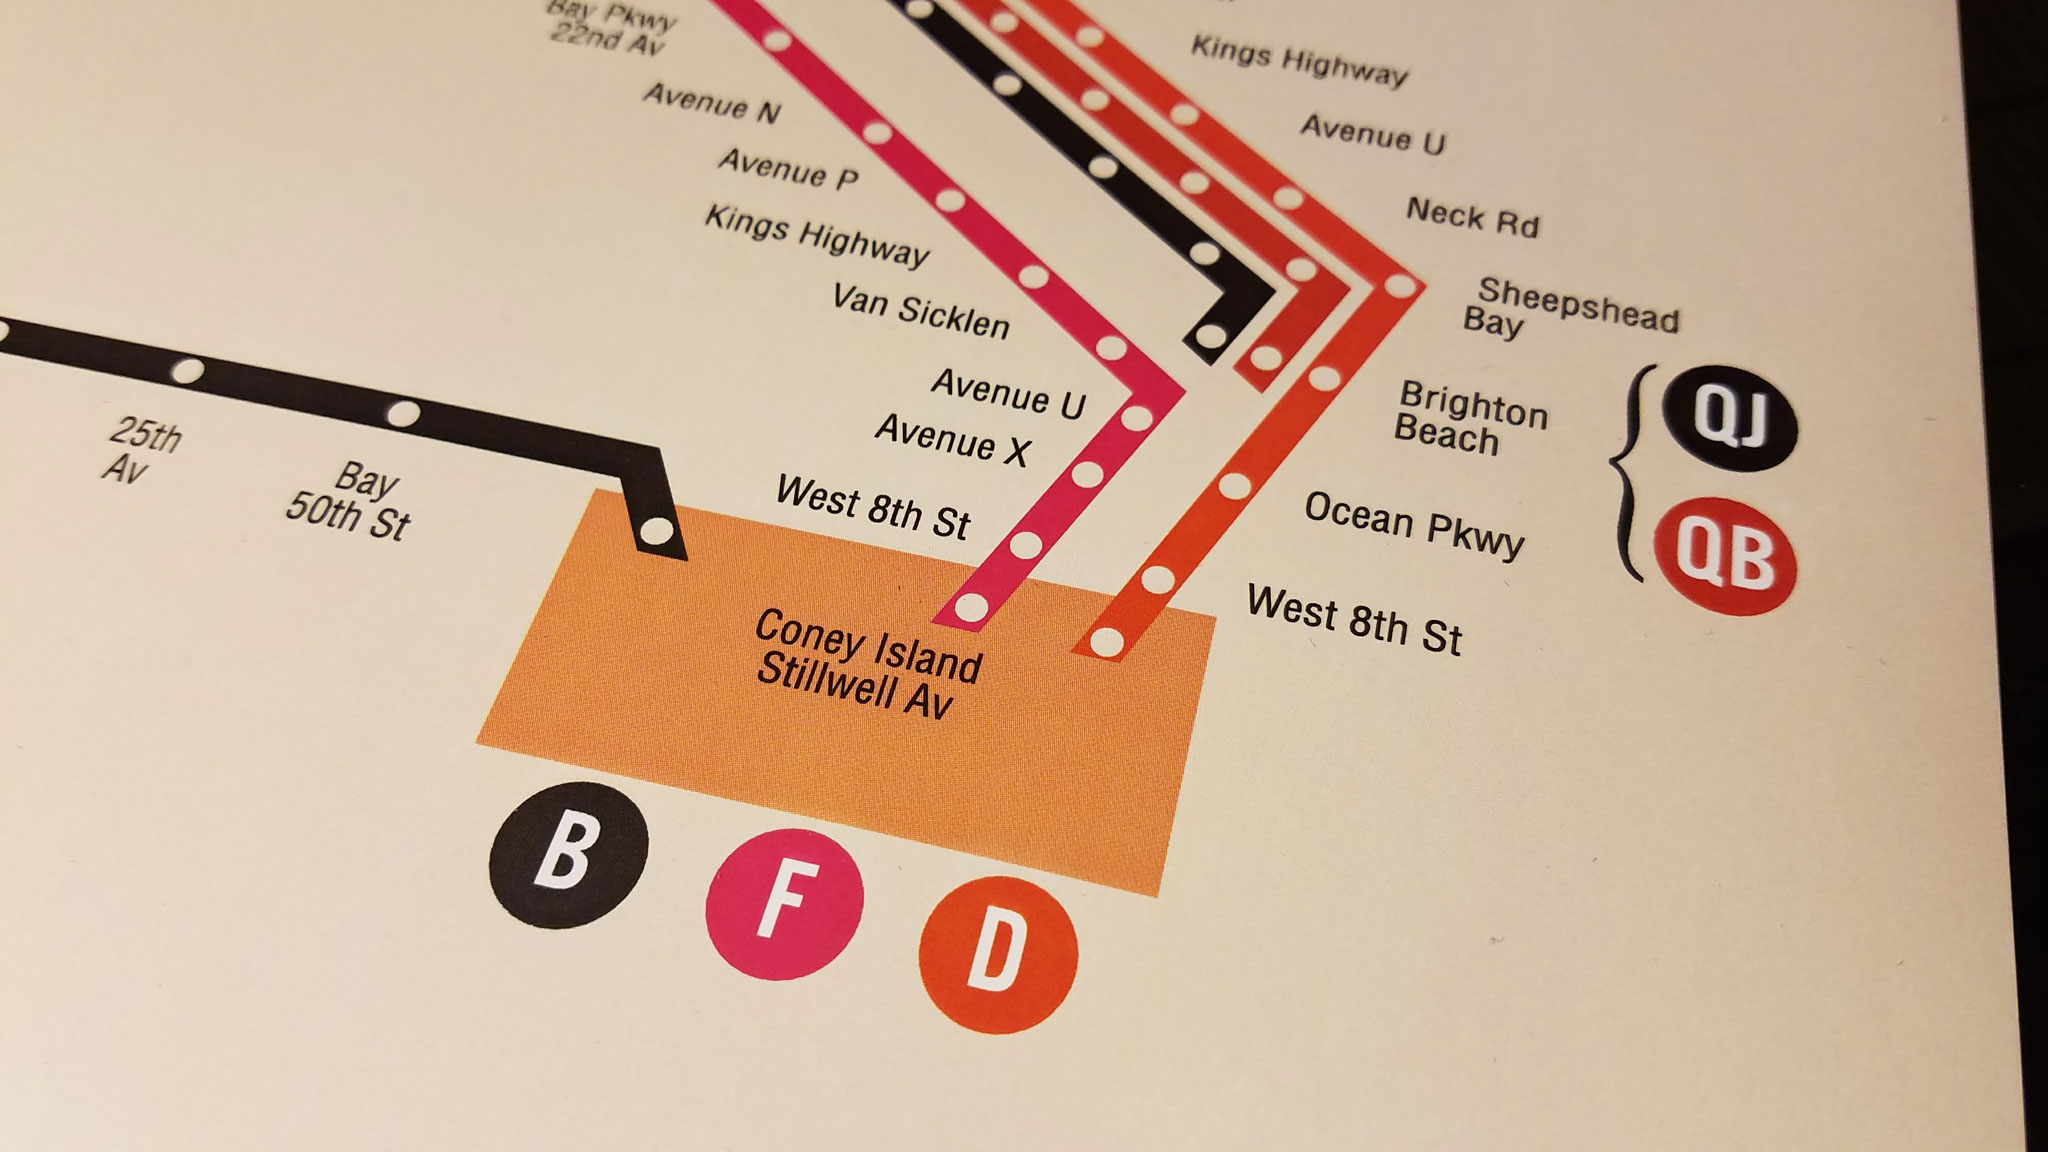 Mta new routes: chrystie street connection 50th anniversary poster